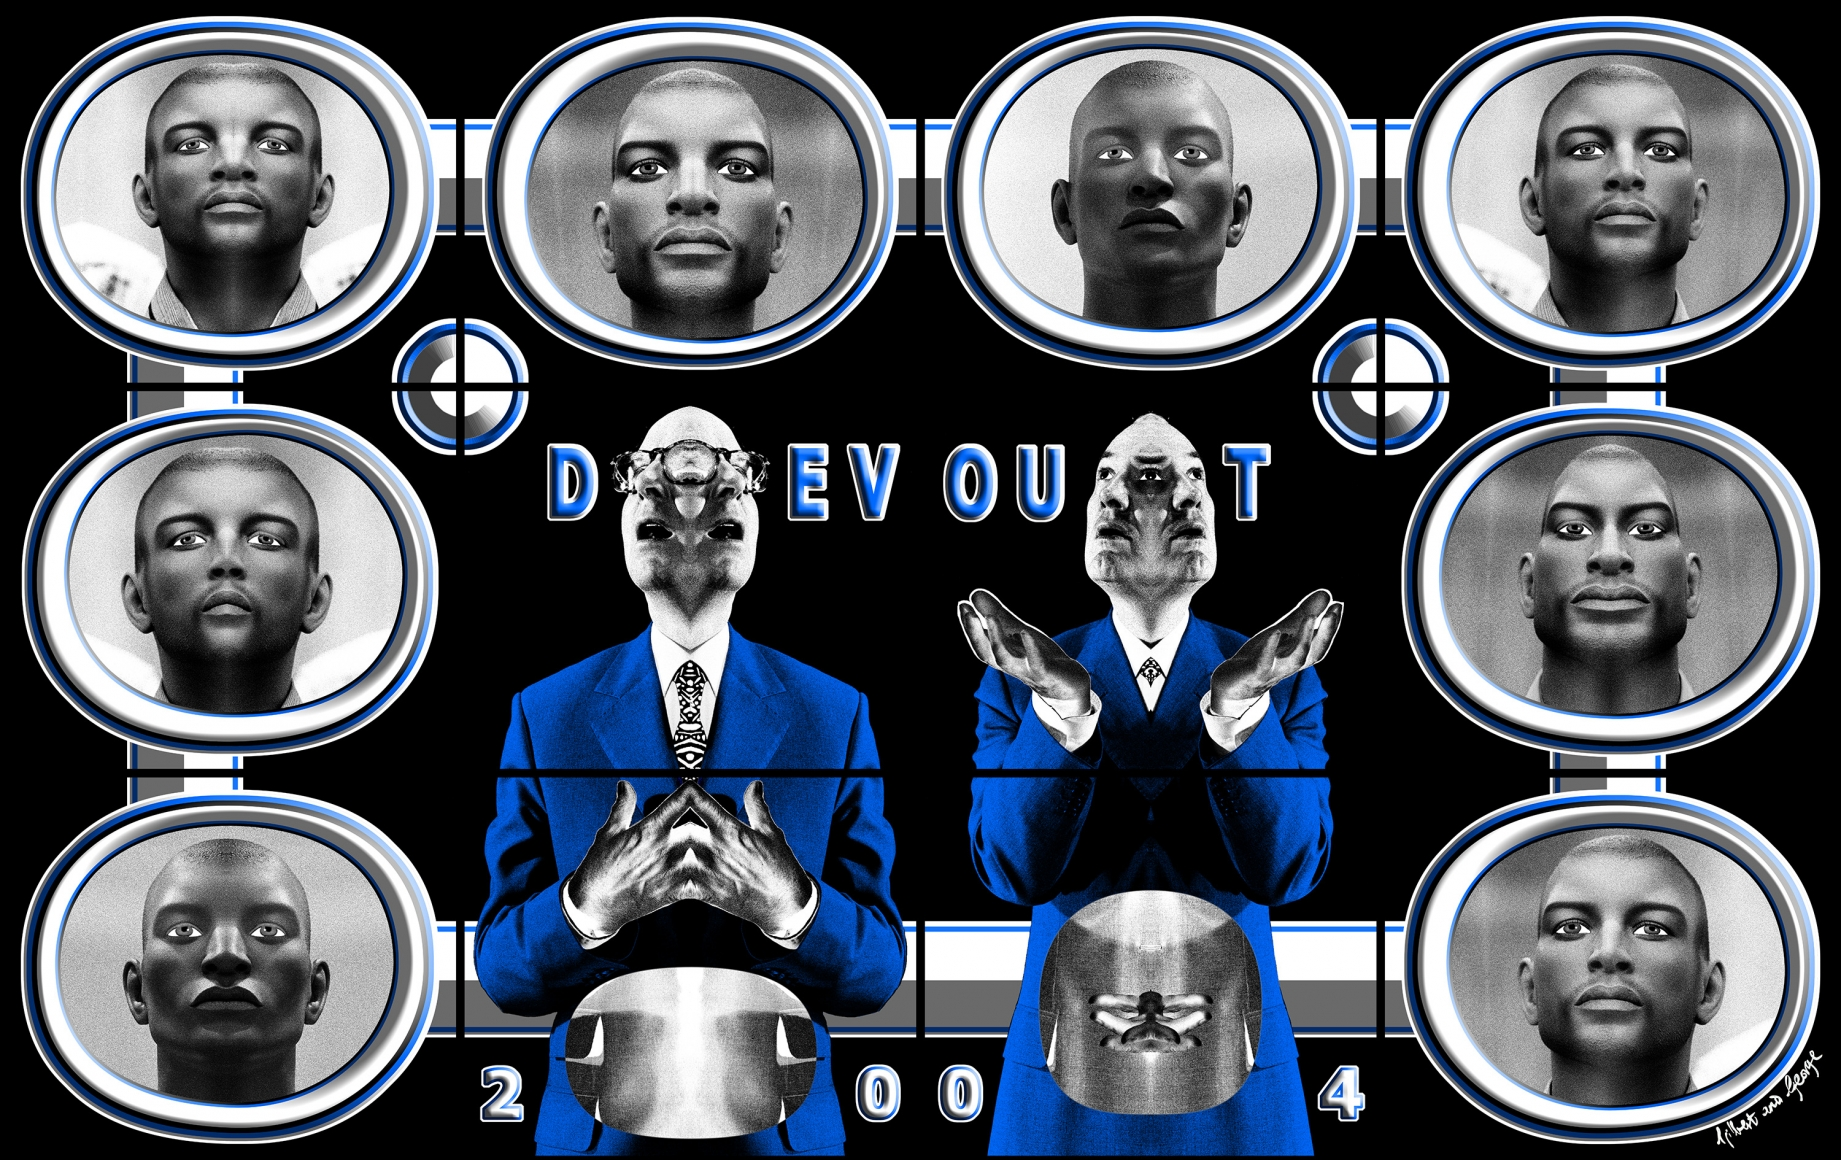 GILBERT & GEORGE, Devout, 2004